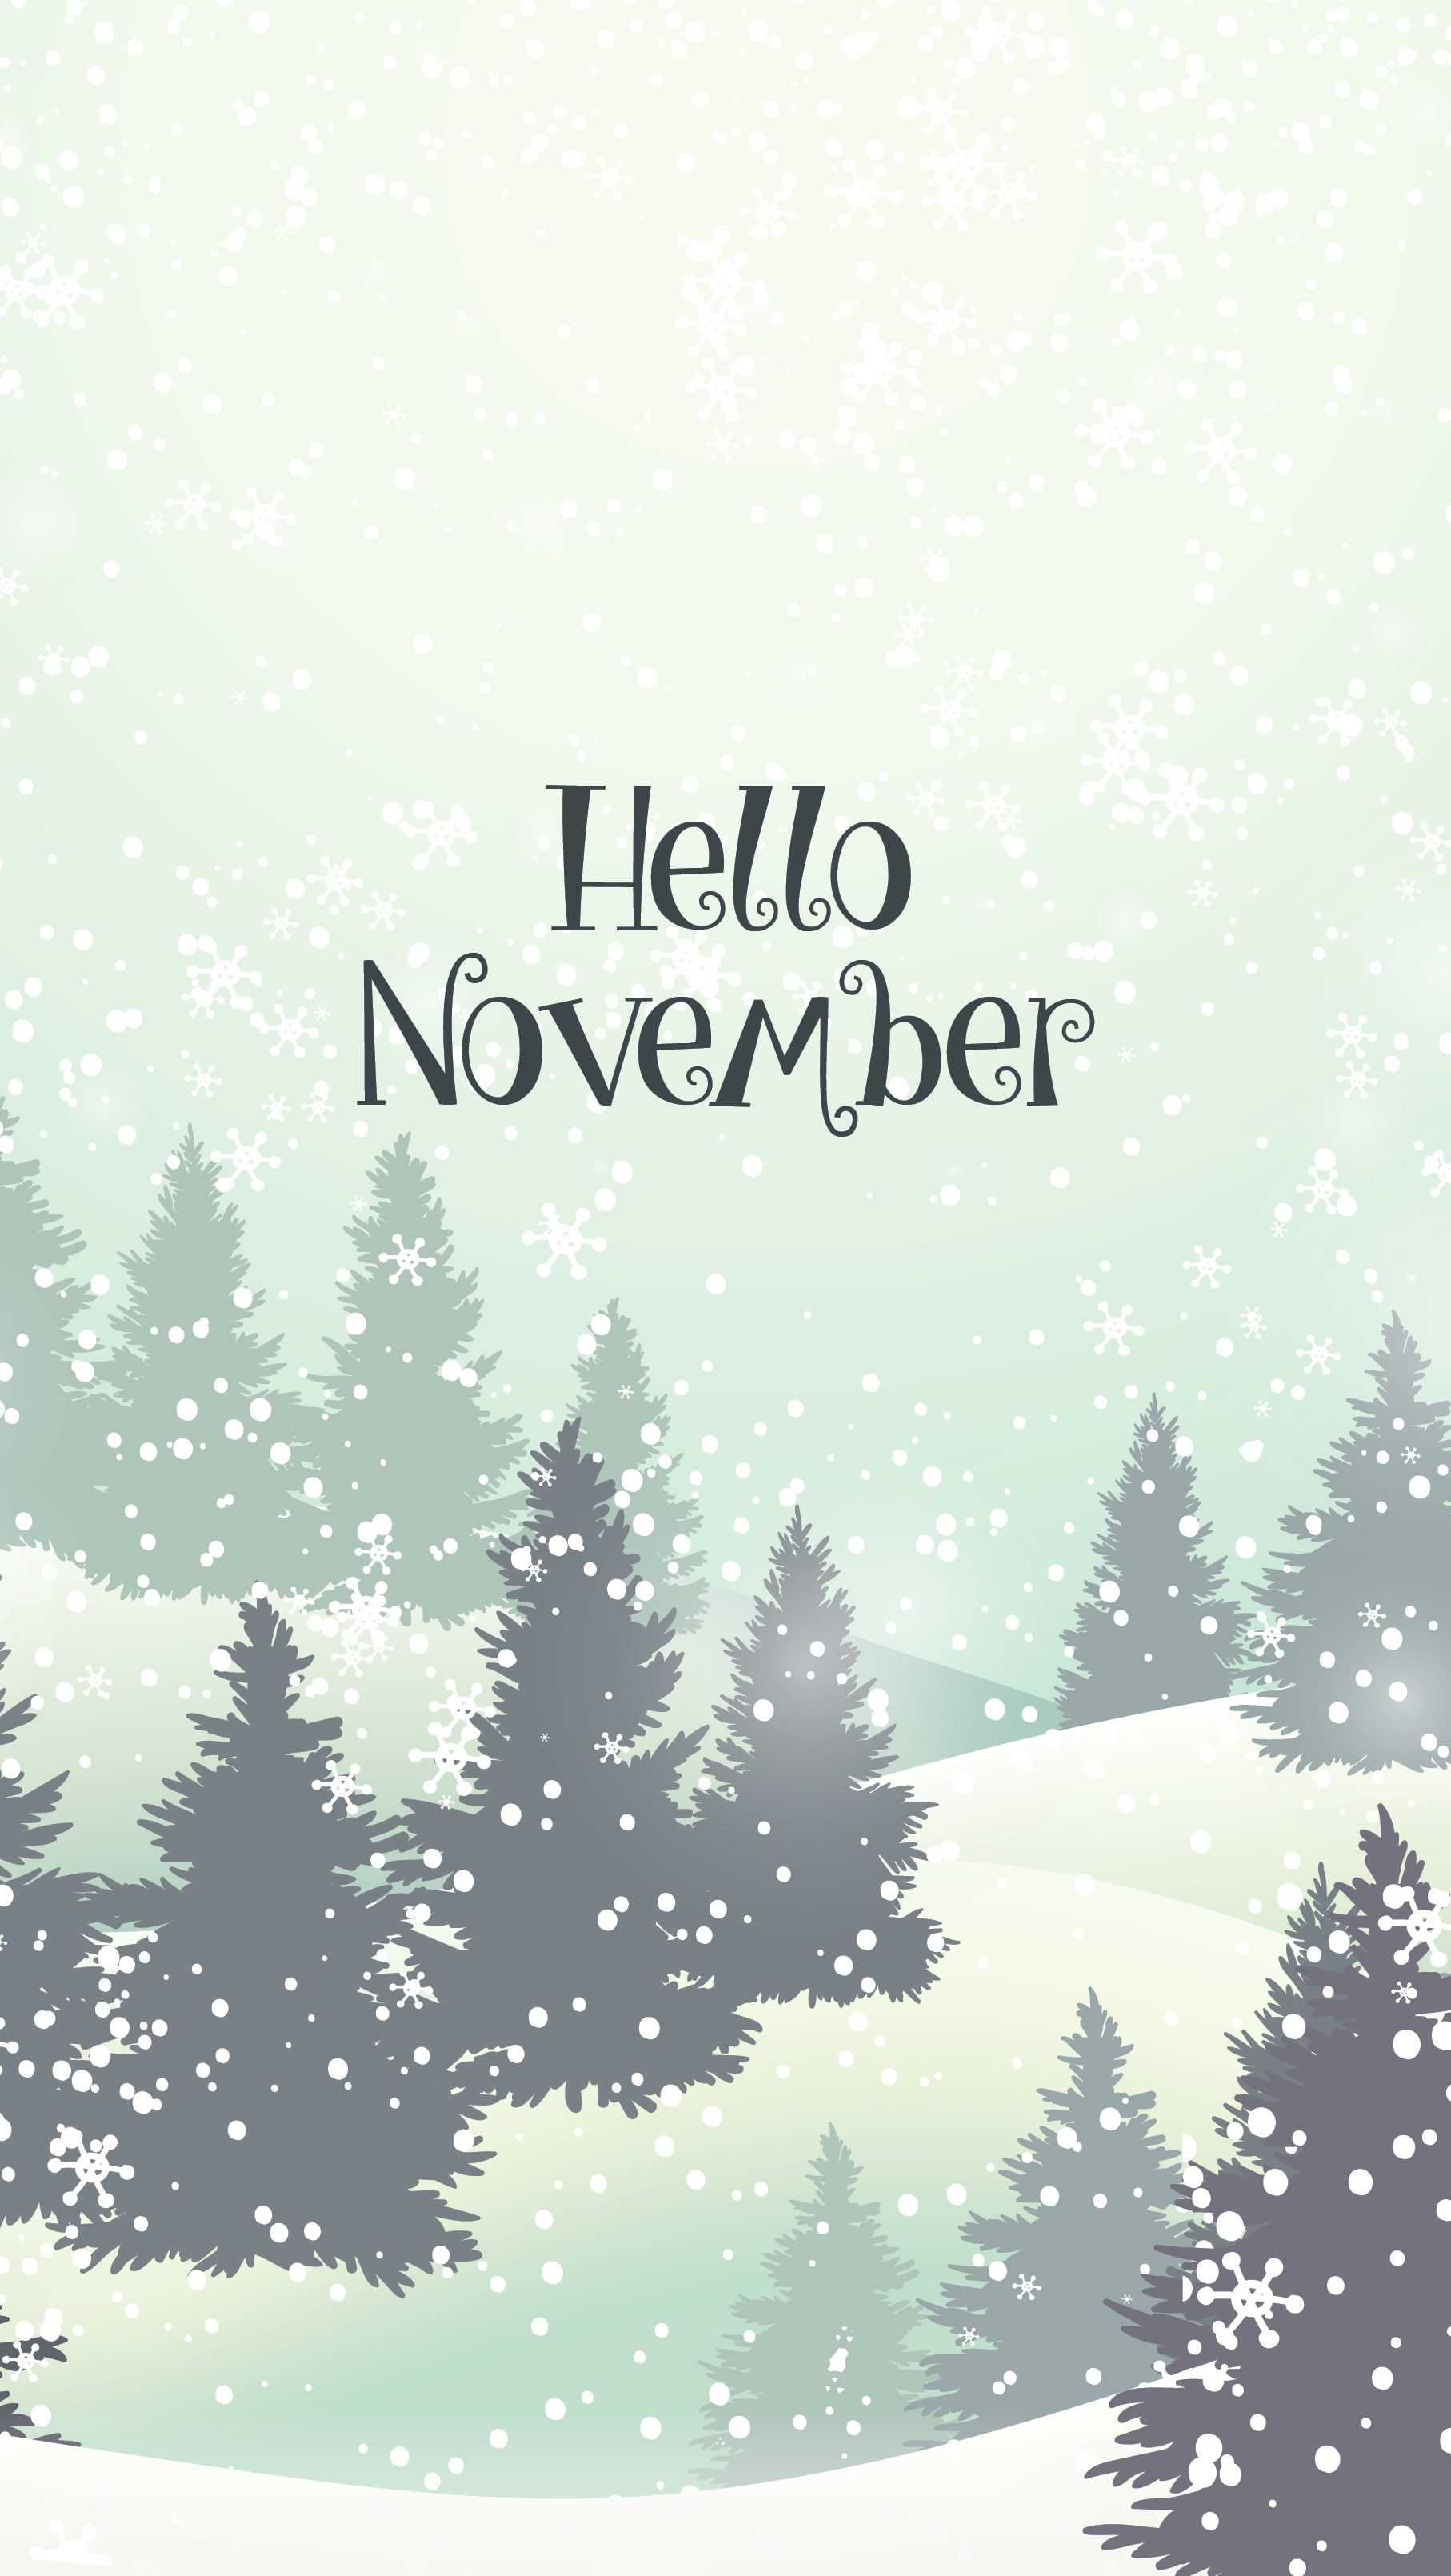 November Backgrounds phone wallpapers, Calendar